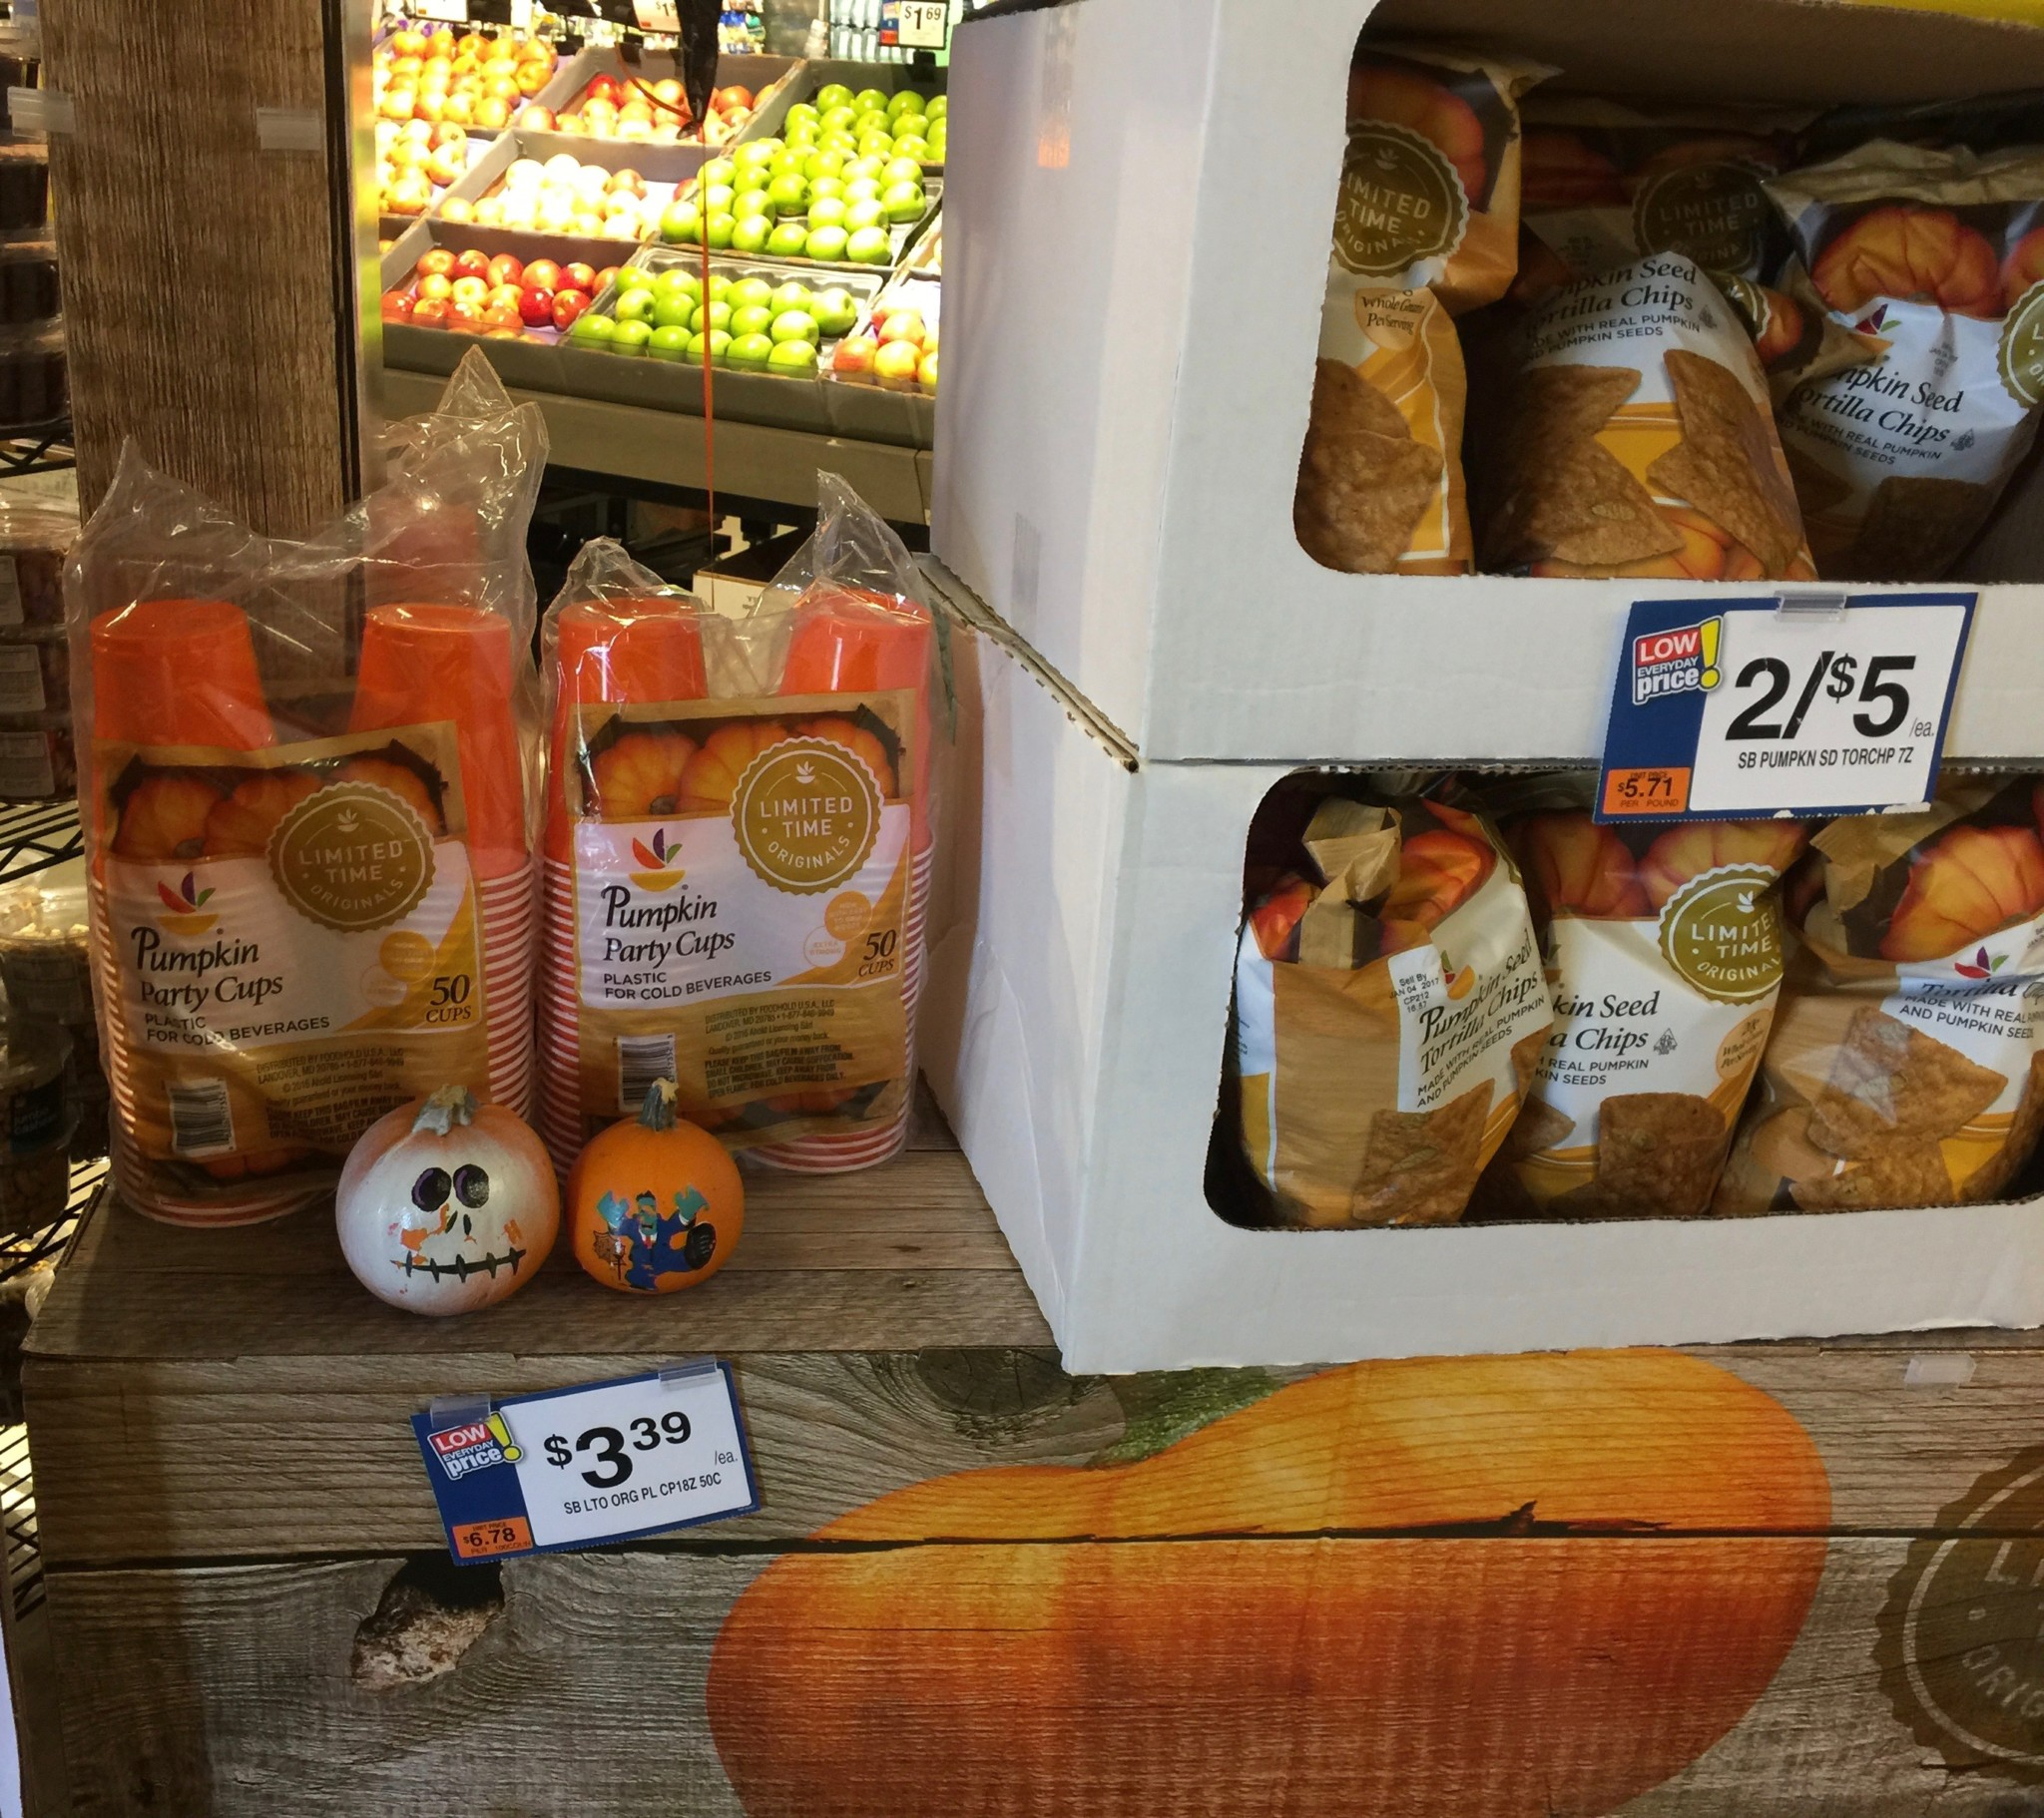 Stop and Shop - Pumpkin Spice Chips and Cups